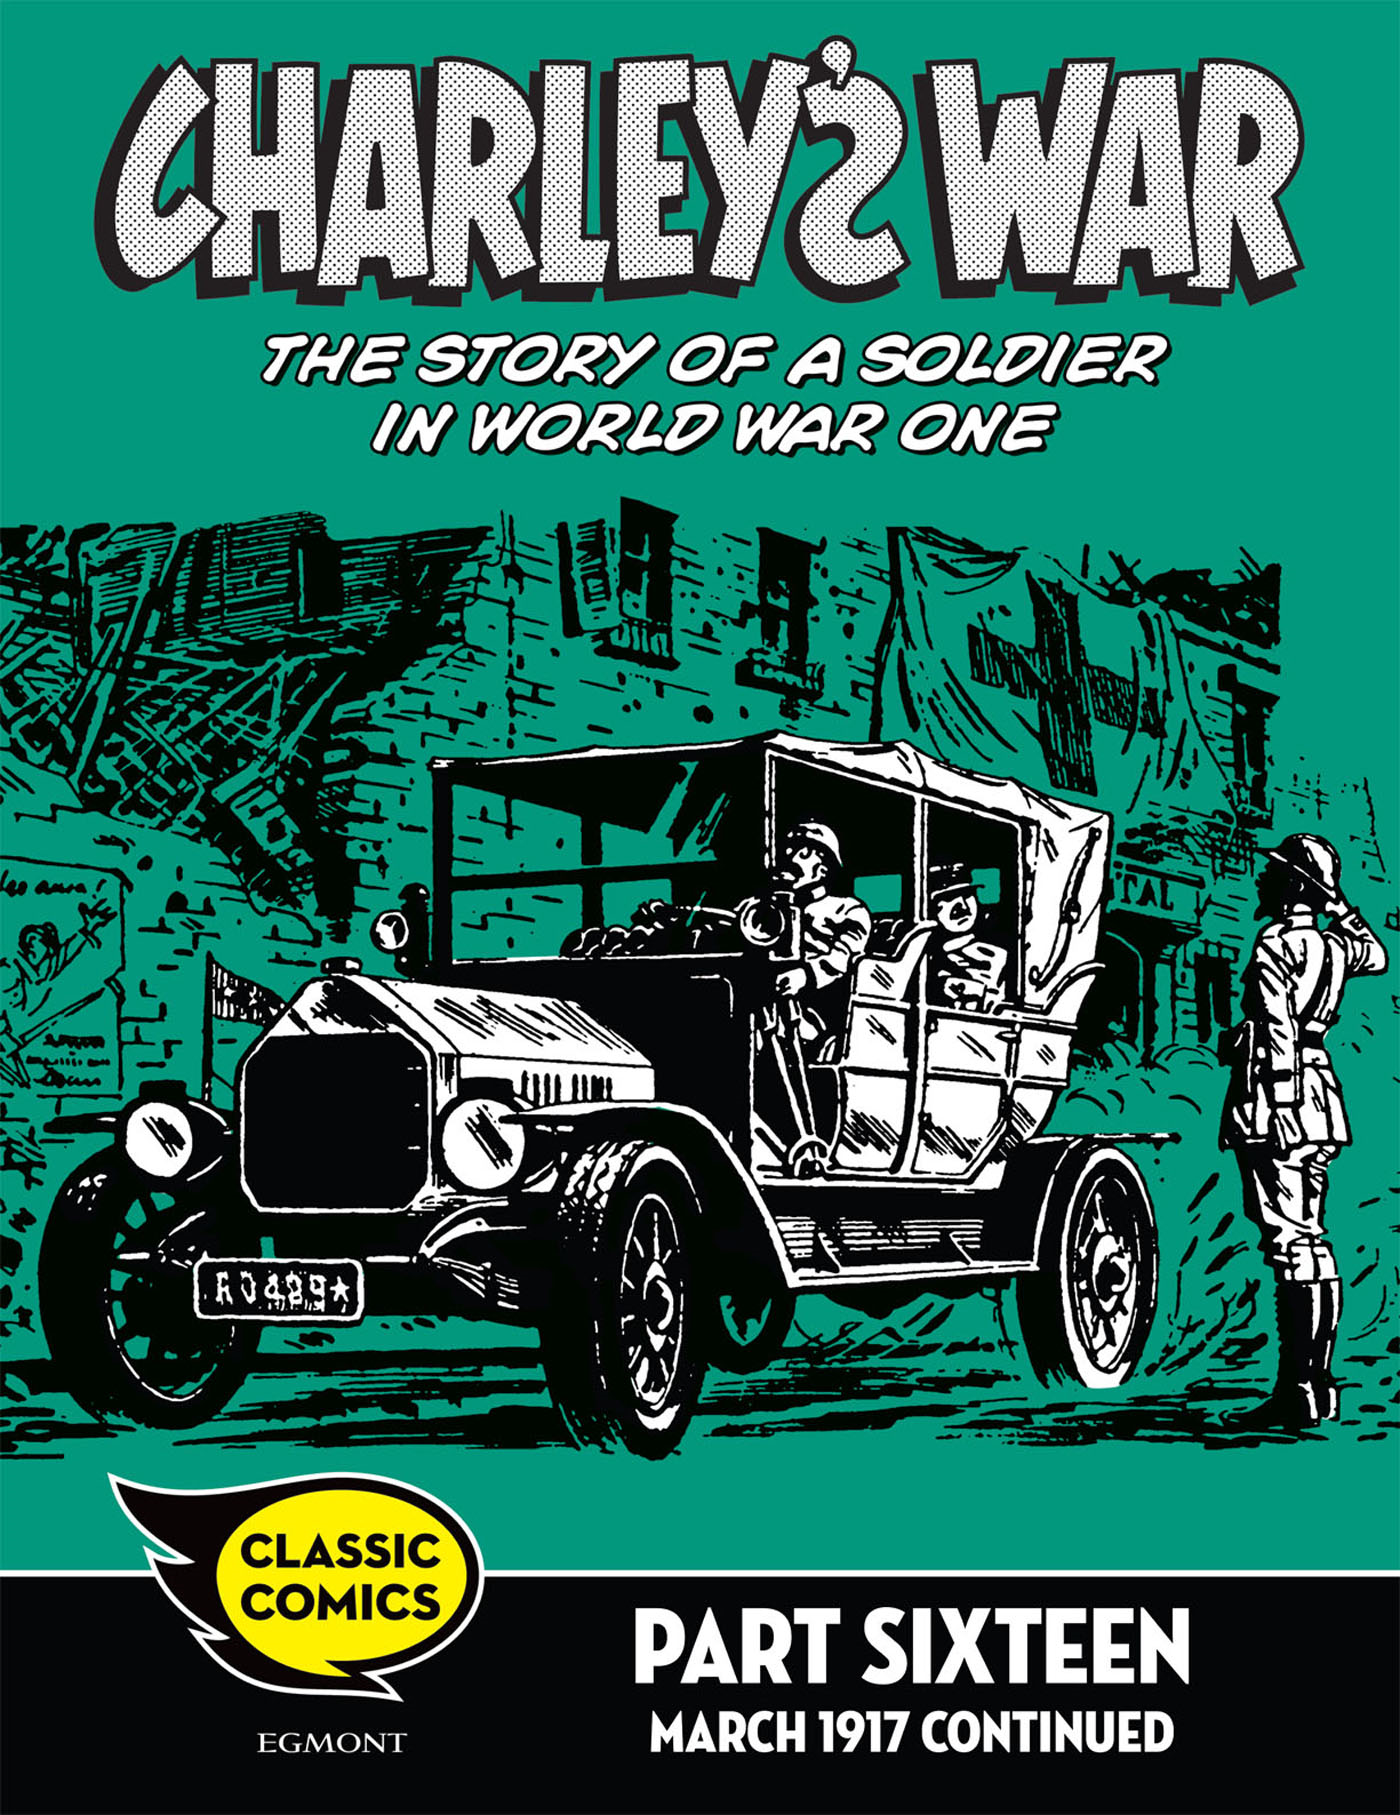 Charley's War Comic Part Sixteen: March 1917 continued